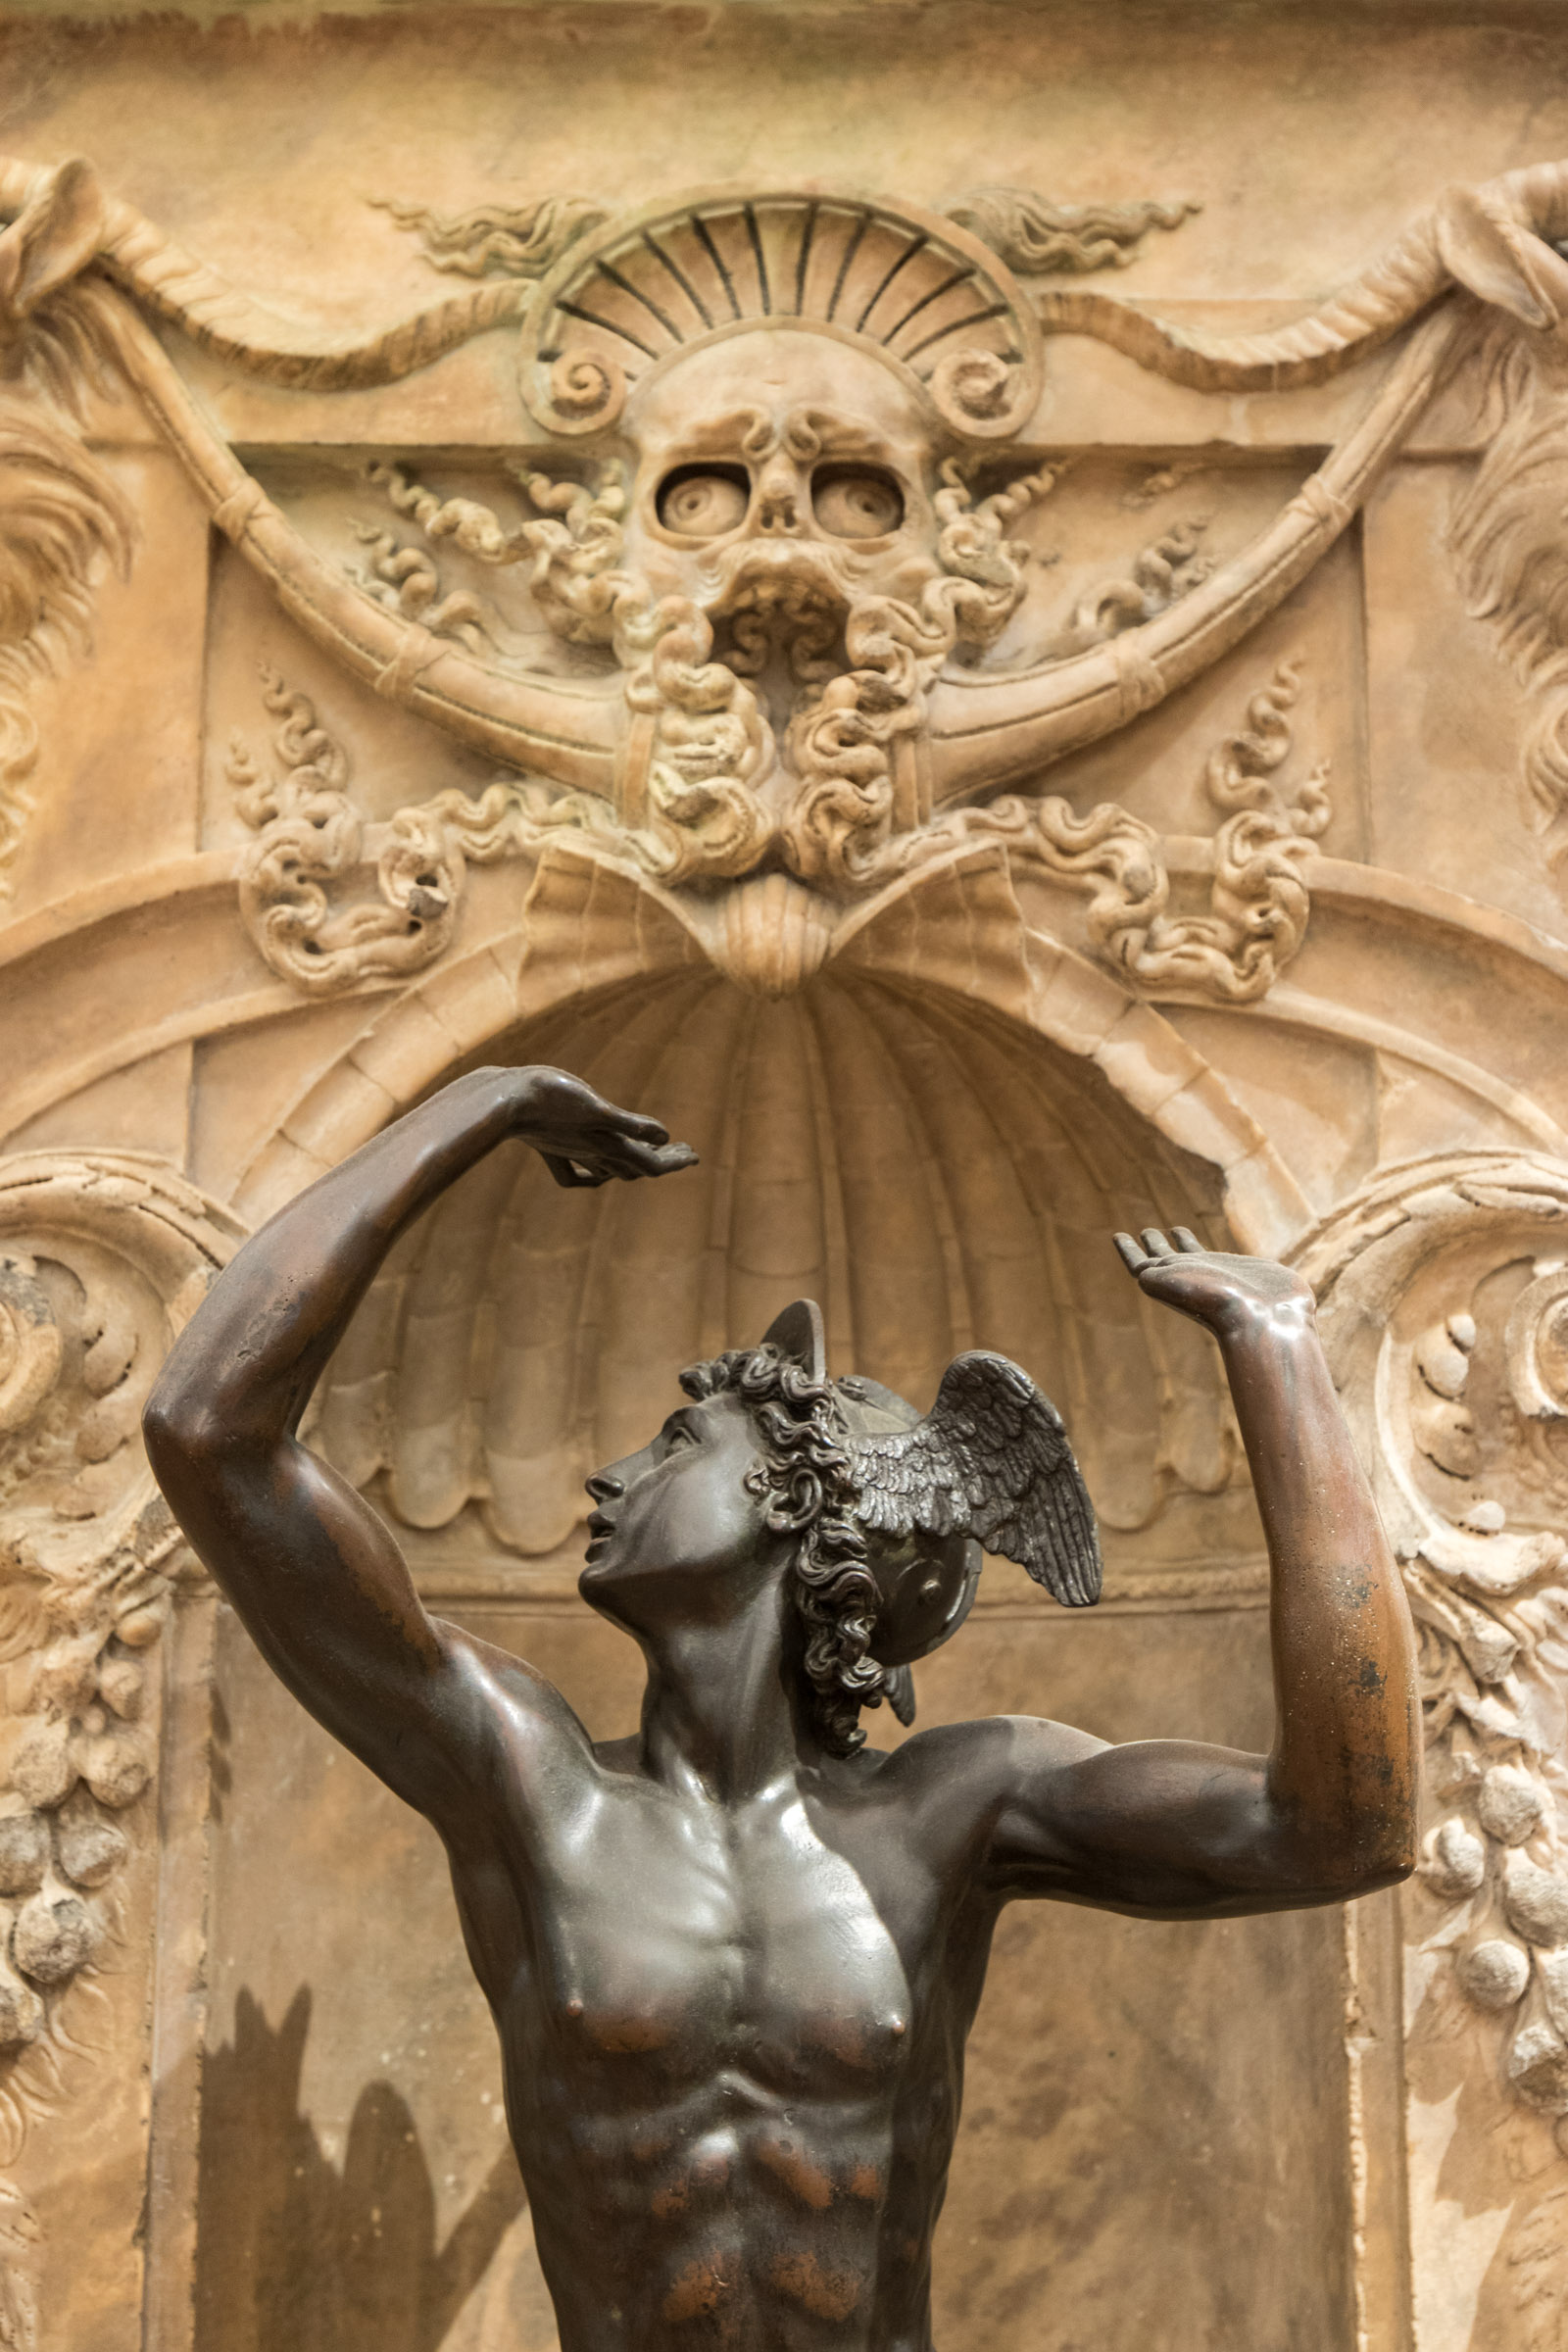 A bronze statue of Mercury from the 1550's